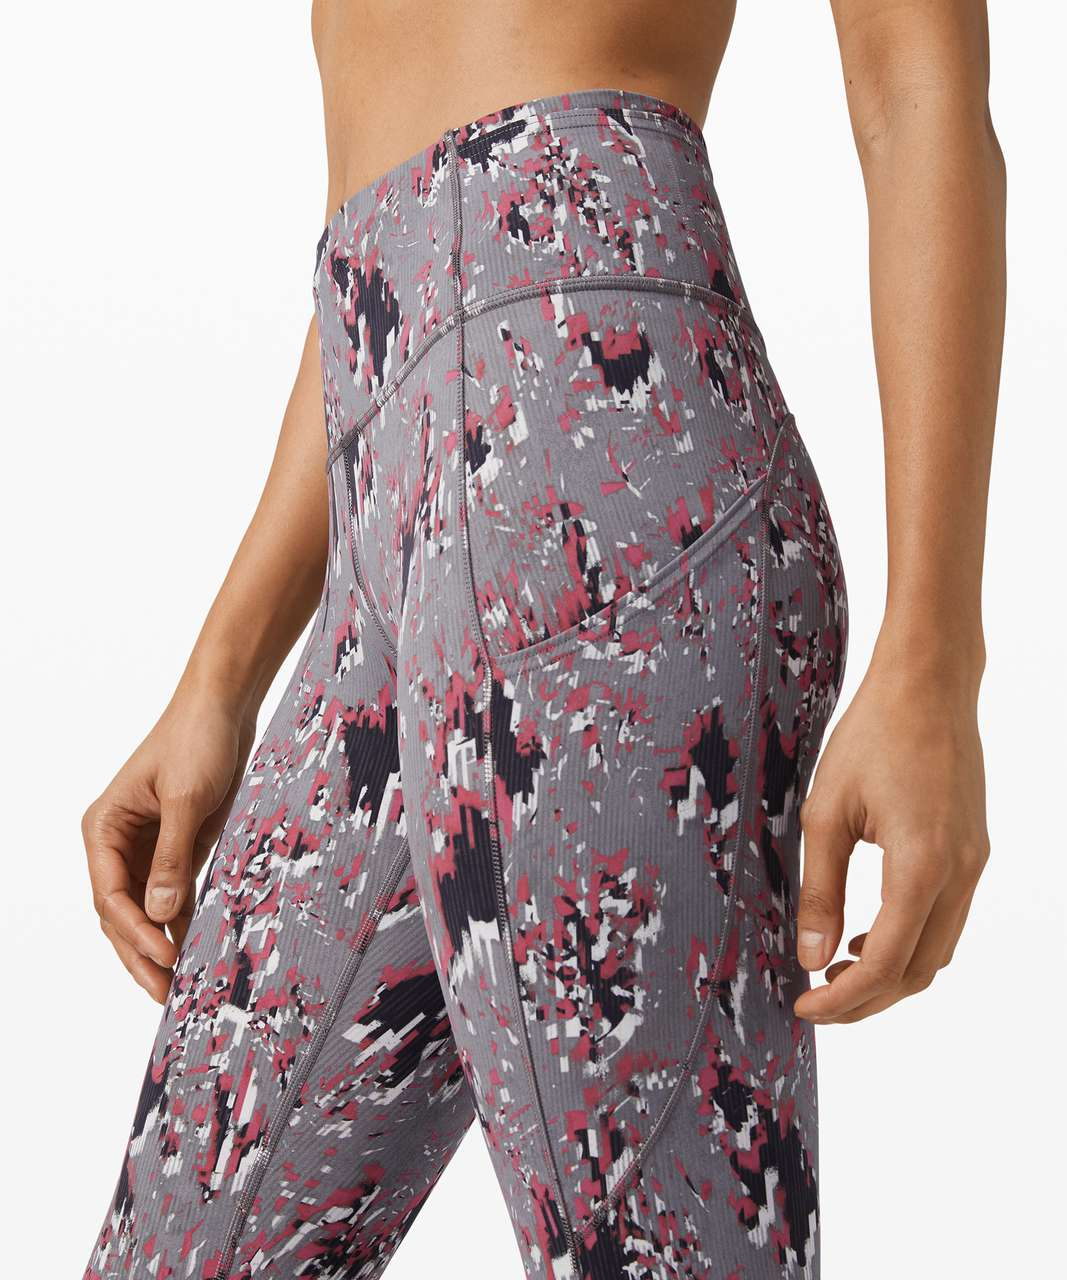 "Lululemon Fast and Free High Rise Tight 25"" - Floral Flux Multi"